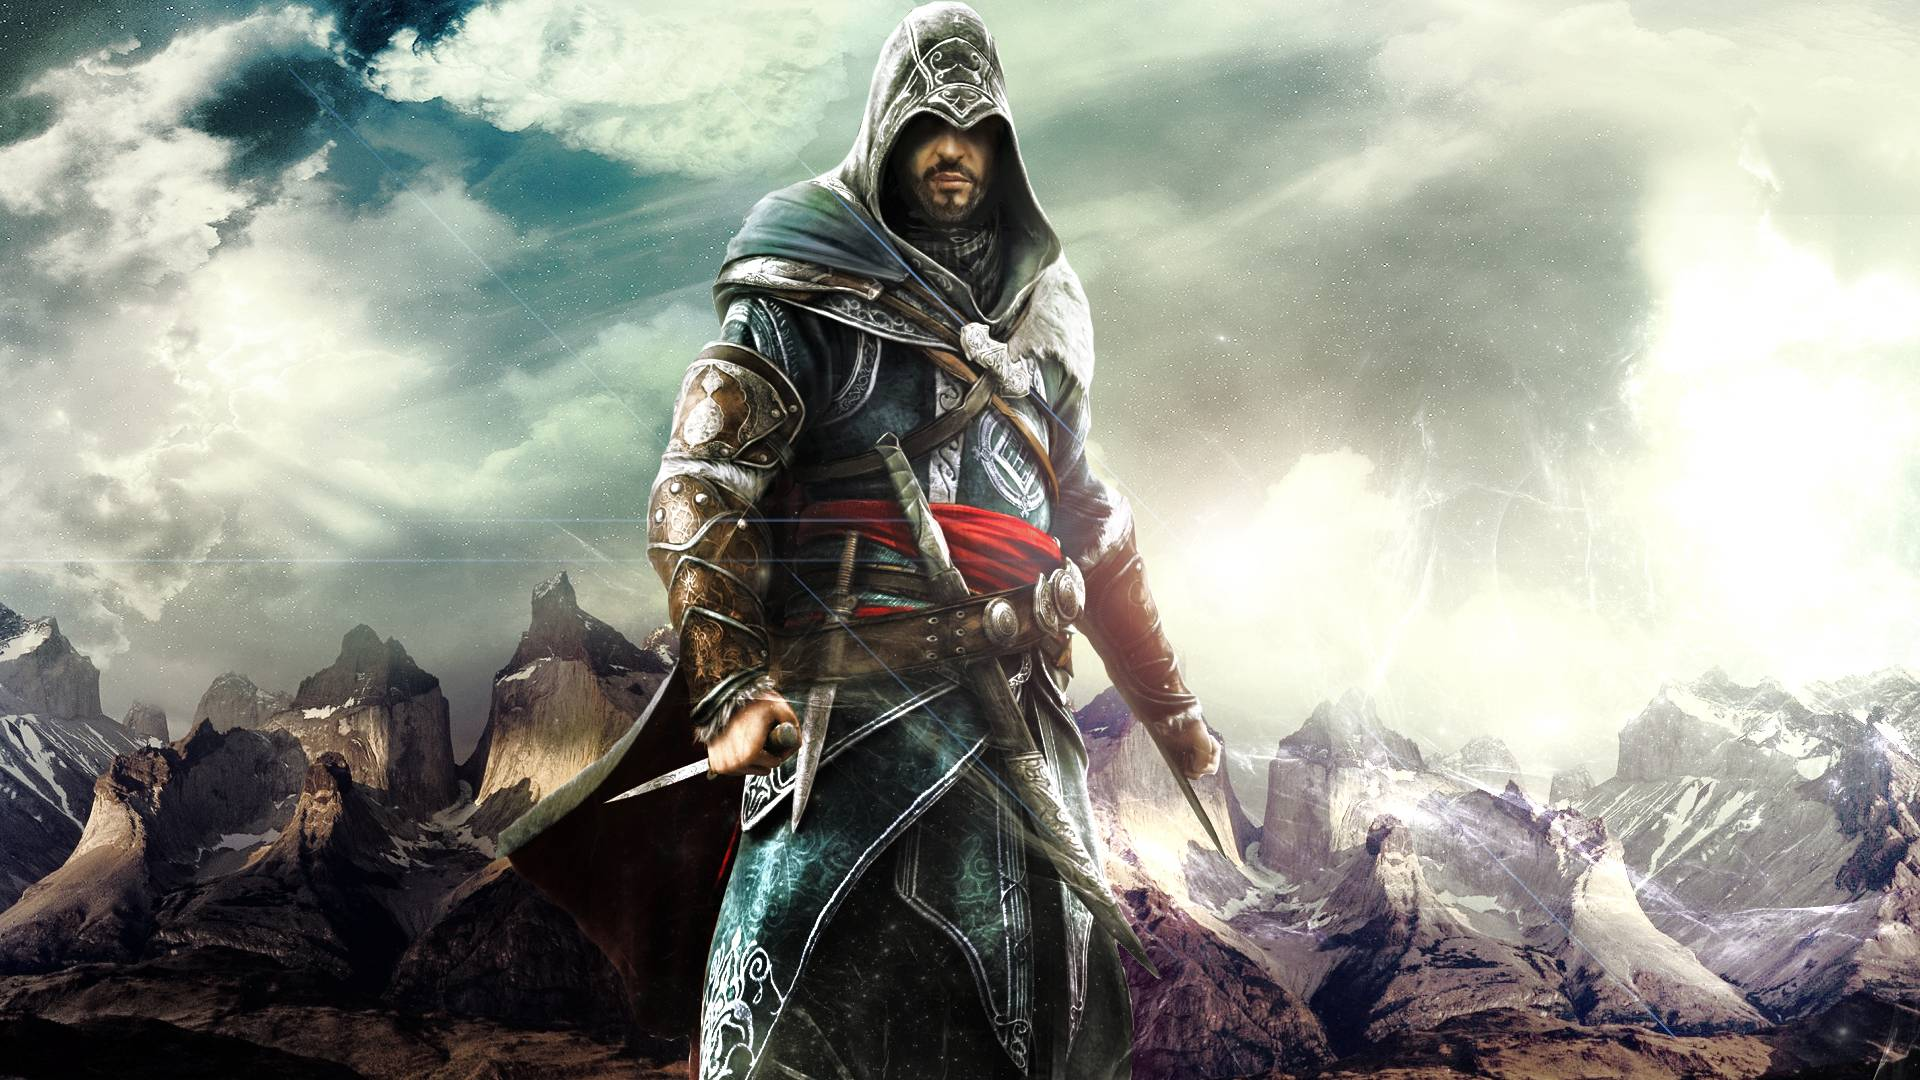 Assassin creed hd wallpapers sf wallpaper assassins creed hd wallpapers wallpaper cave voltagebd Gallery